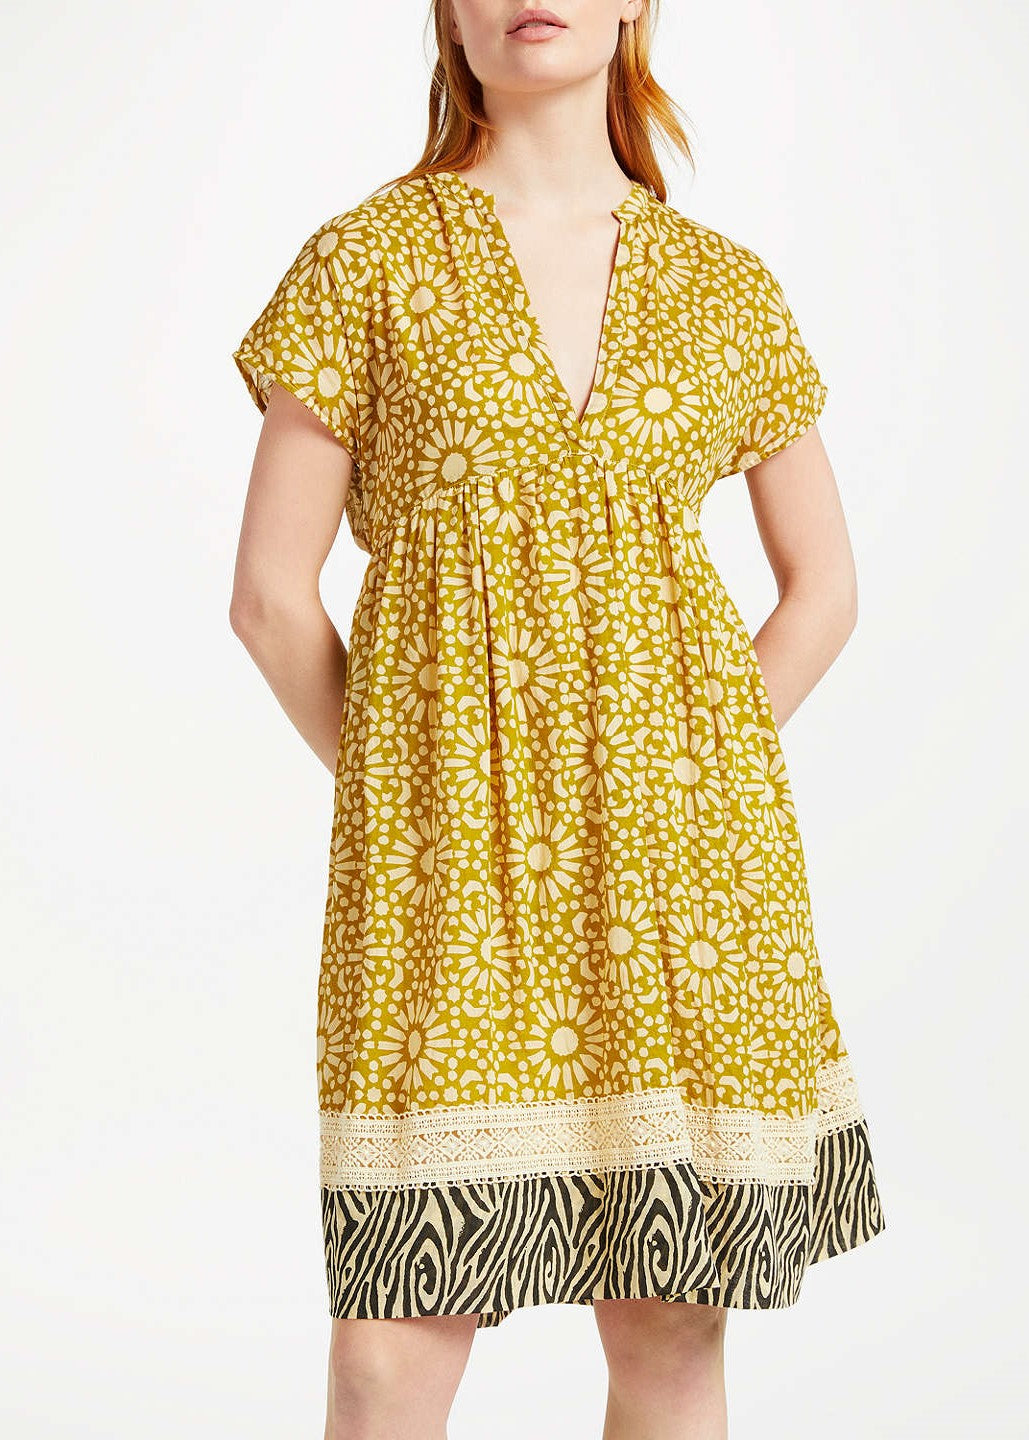 Stella Forest short dress mosaique in ocre